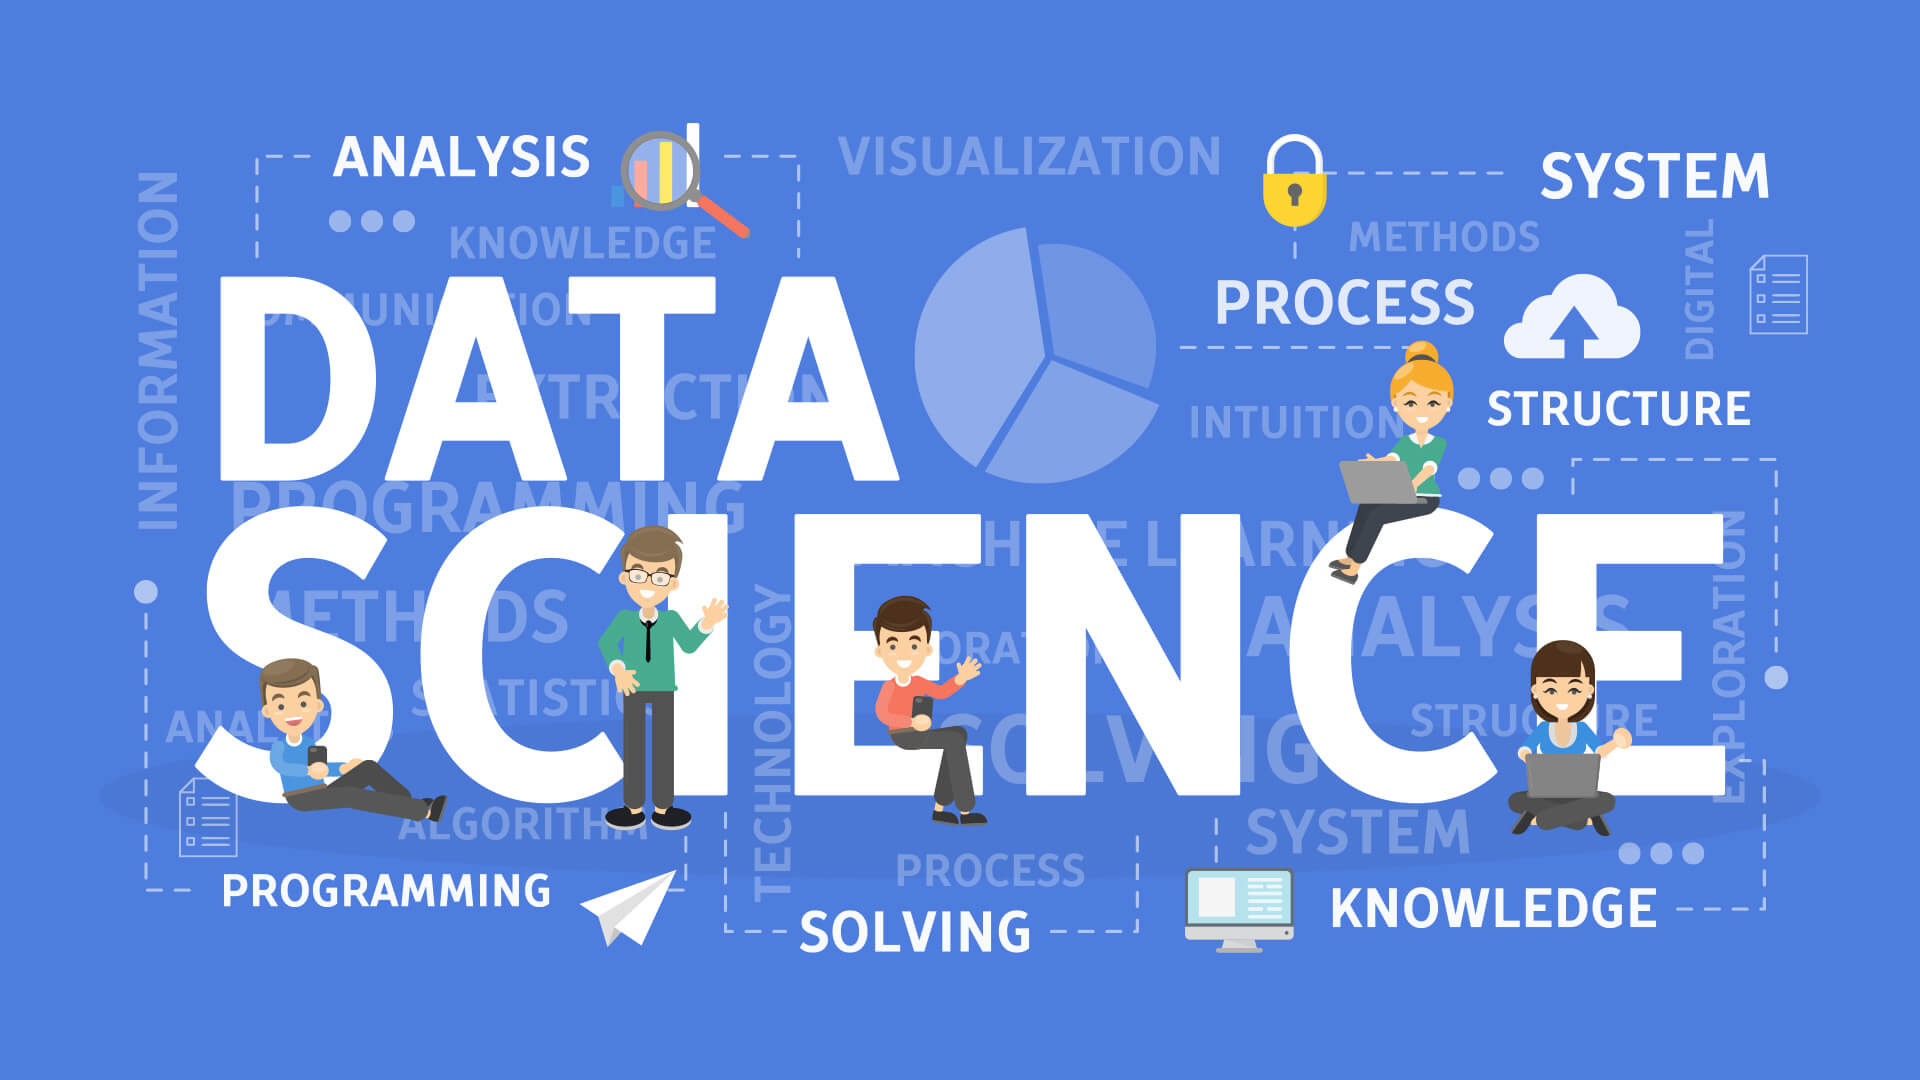 Should Data Science be considered as its own discipline? - The ...